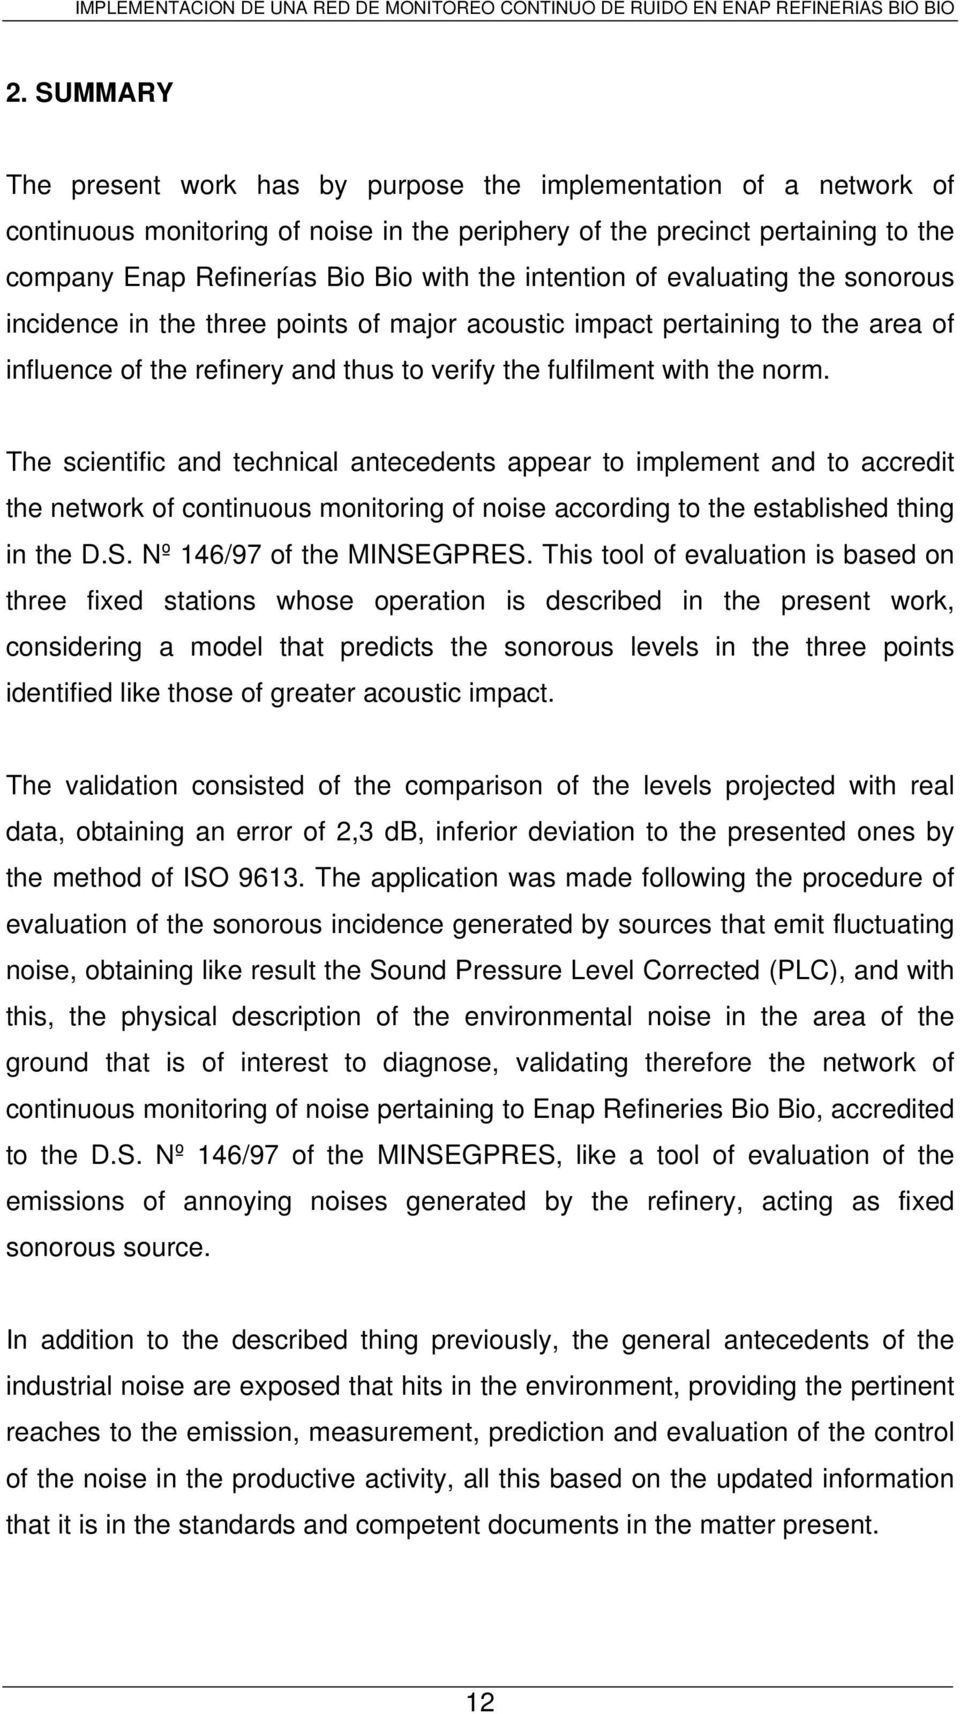 The scientific and technical antecedents appear to implement and to accredit the network of continuous monitoring of noise according to the established thing in the D.S. Nº 146/97 of the MINSEGPRES.